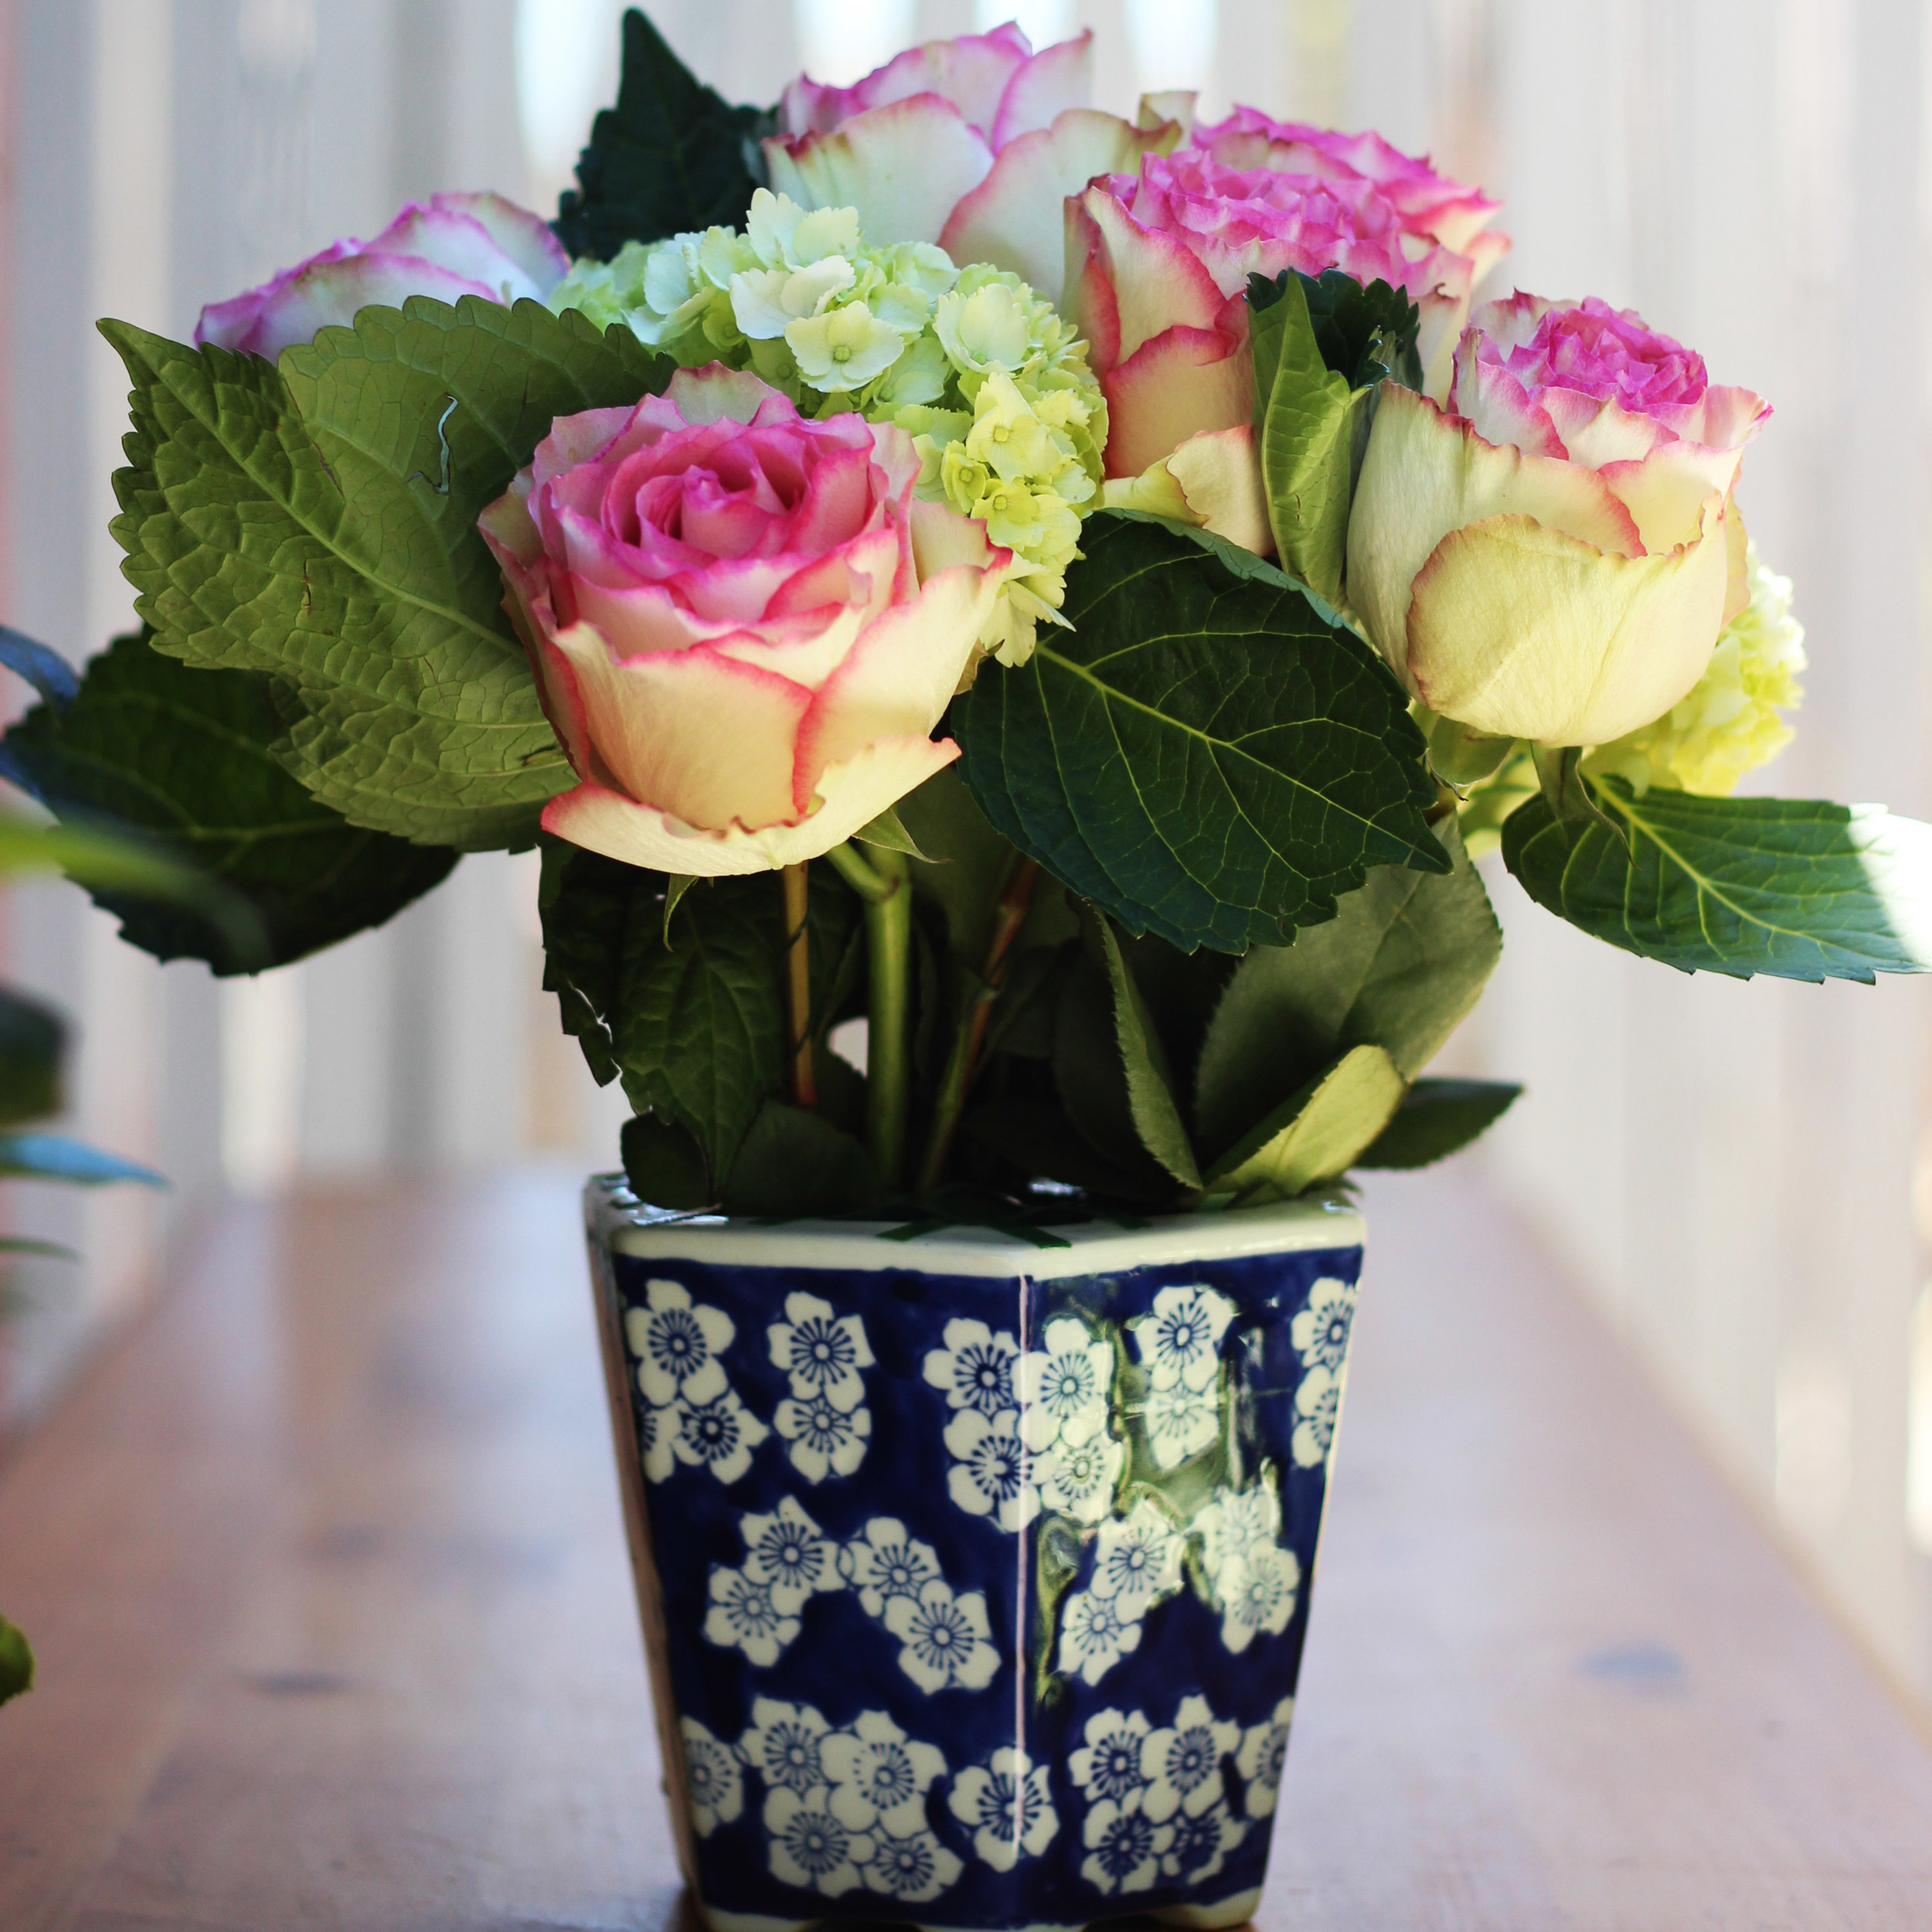 Next roses should be half an inch shorter than Hydrangea (10 inches).